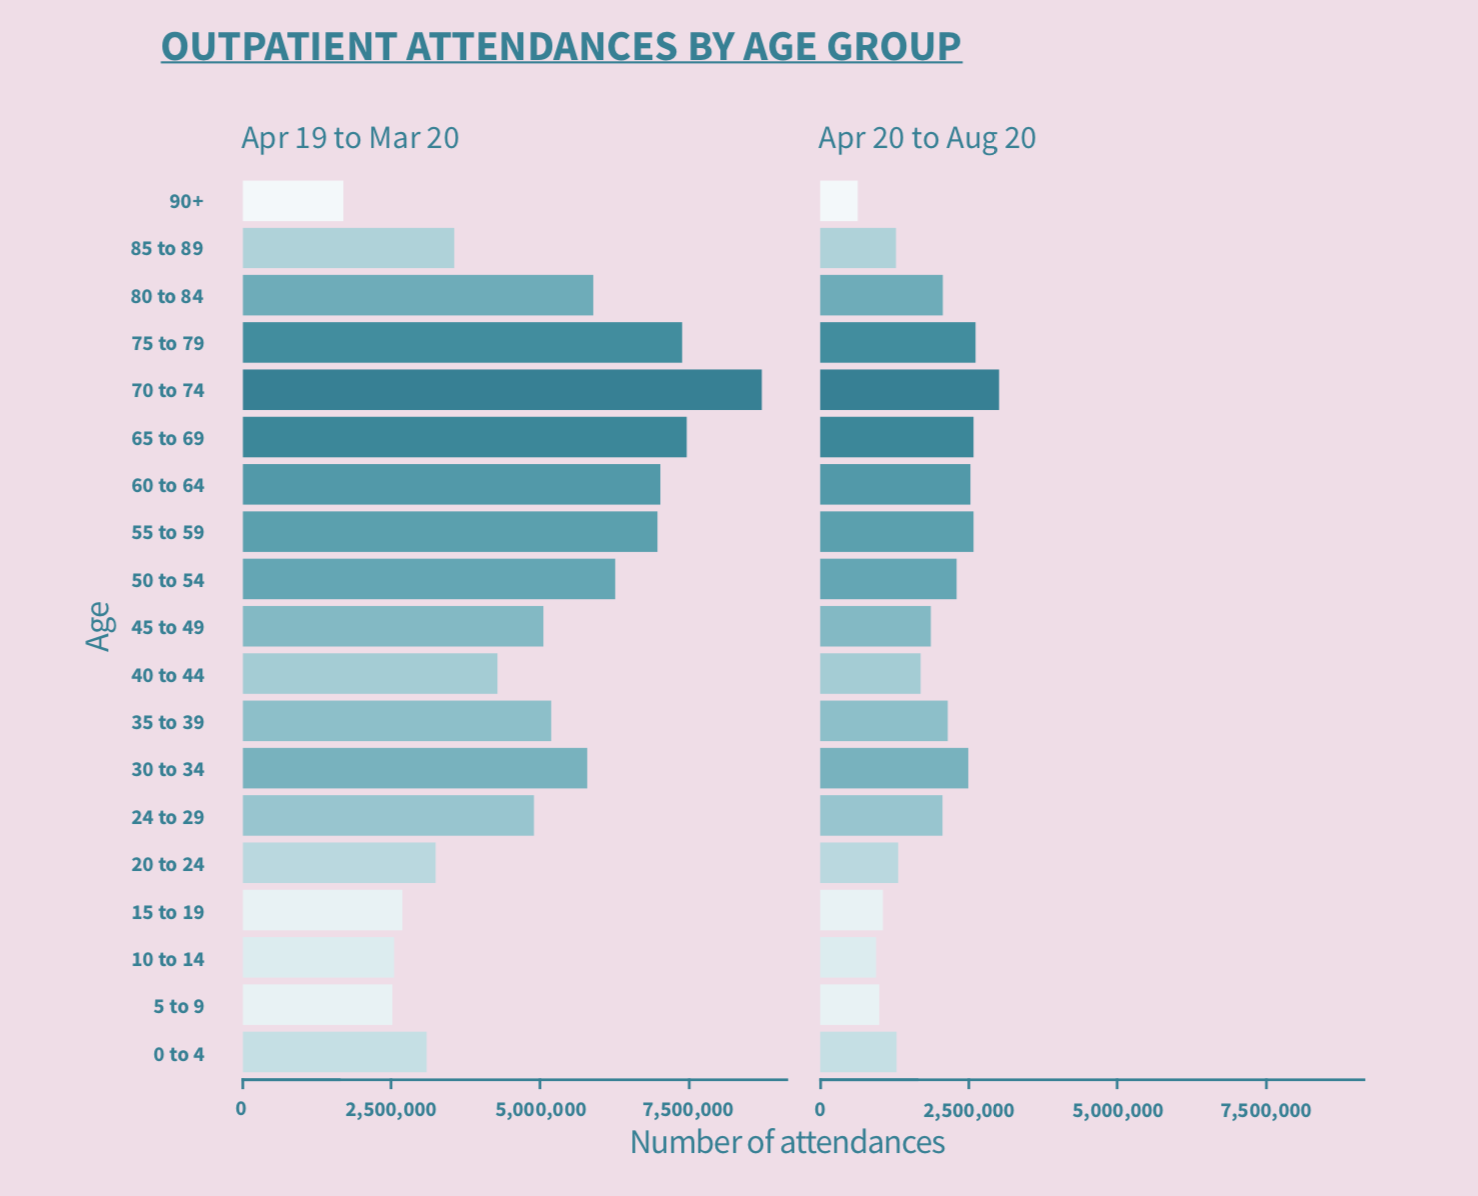 NHS outpatient attendances by age group